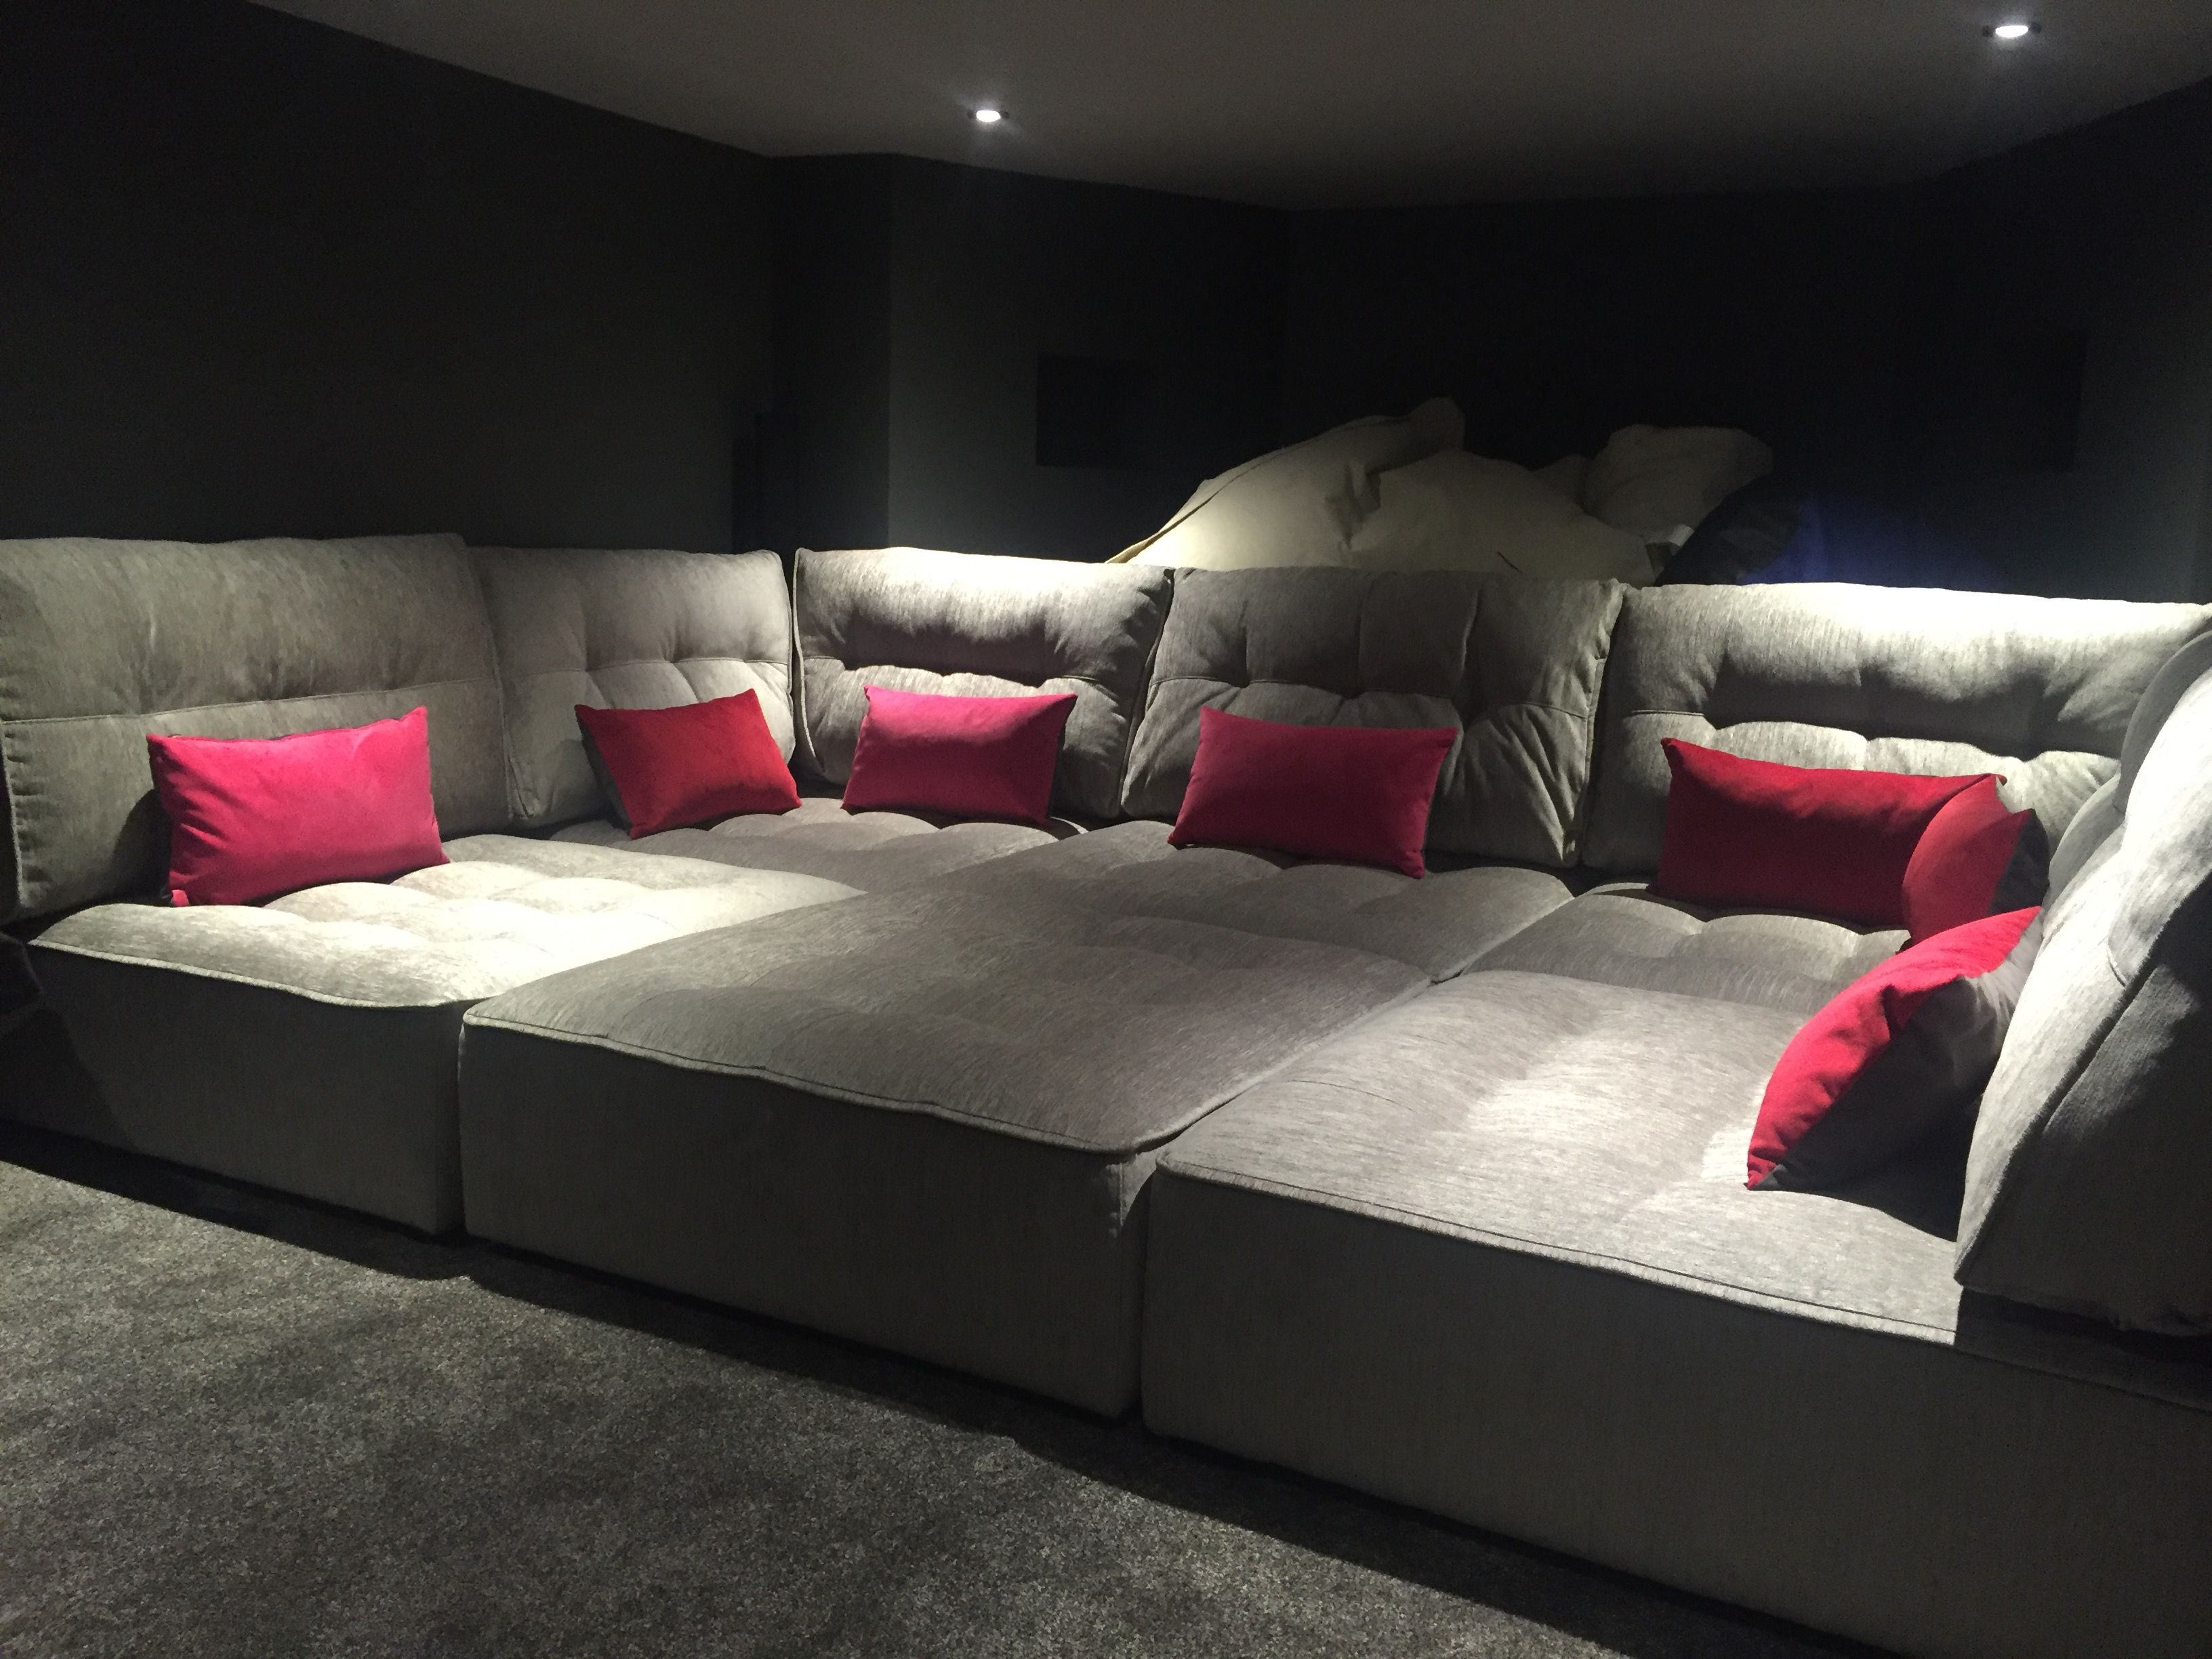 Theatre Room Furniture Tapas In A Basement Media Room  Perfect For The Family To Chill .